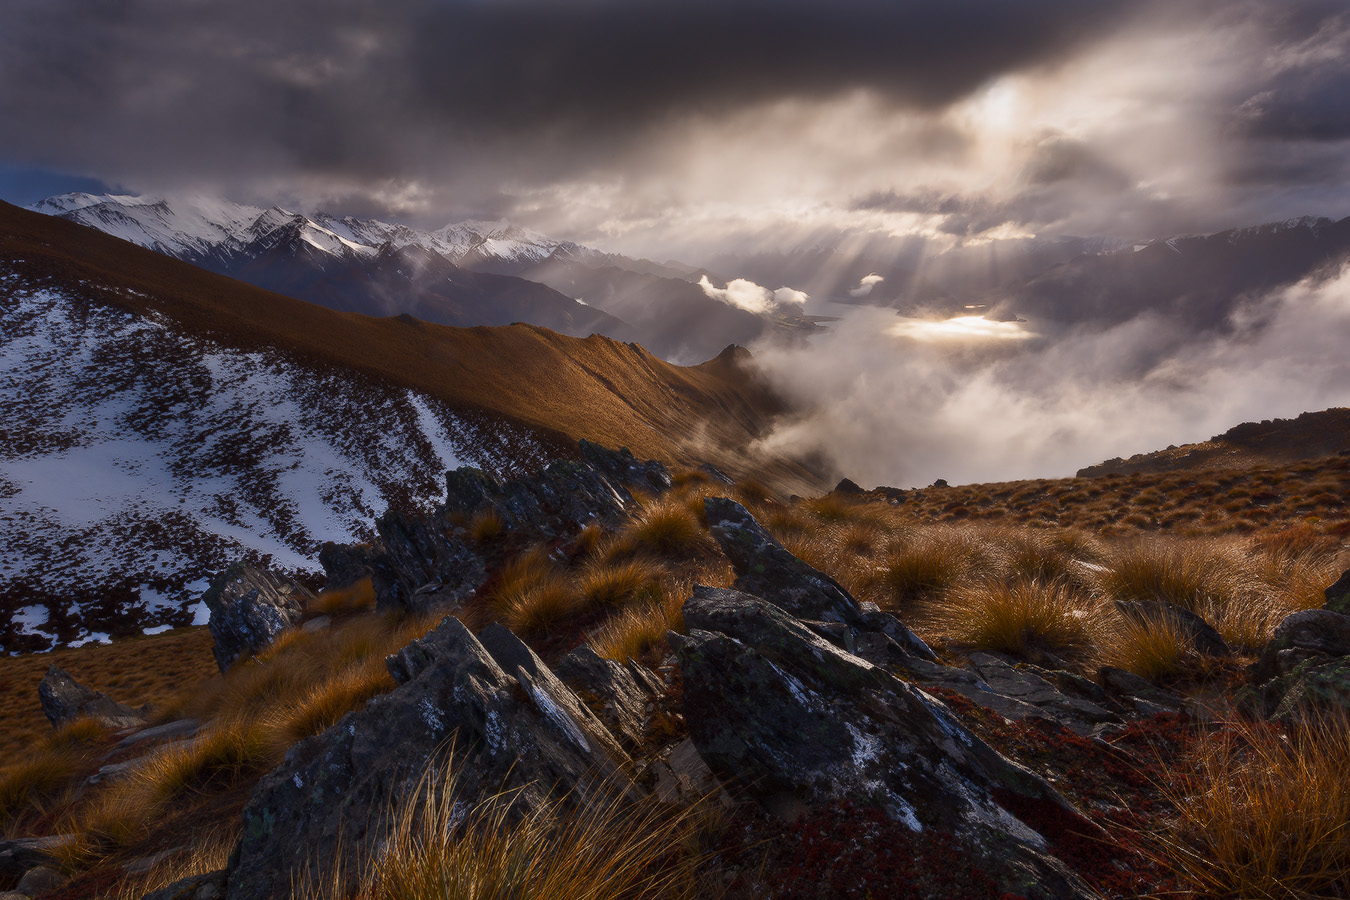 lanscape photography isthmus peak wanaka by everlook photography